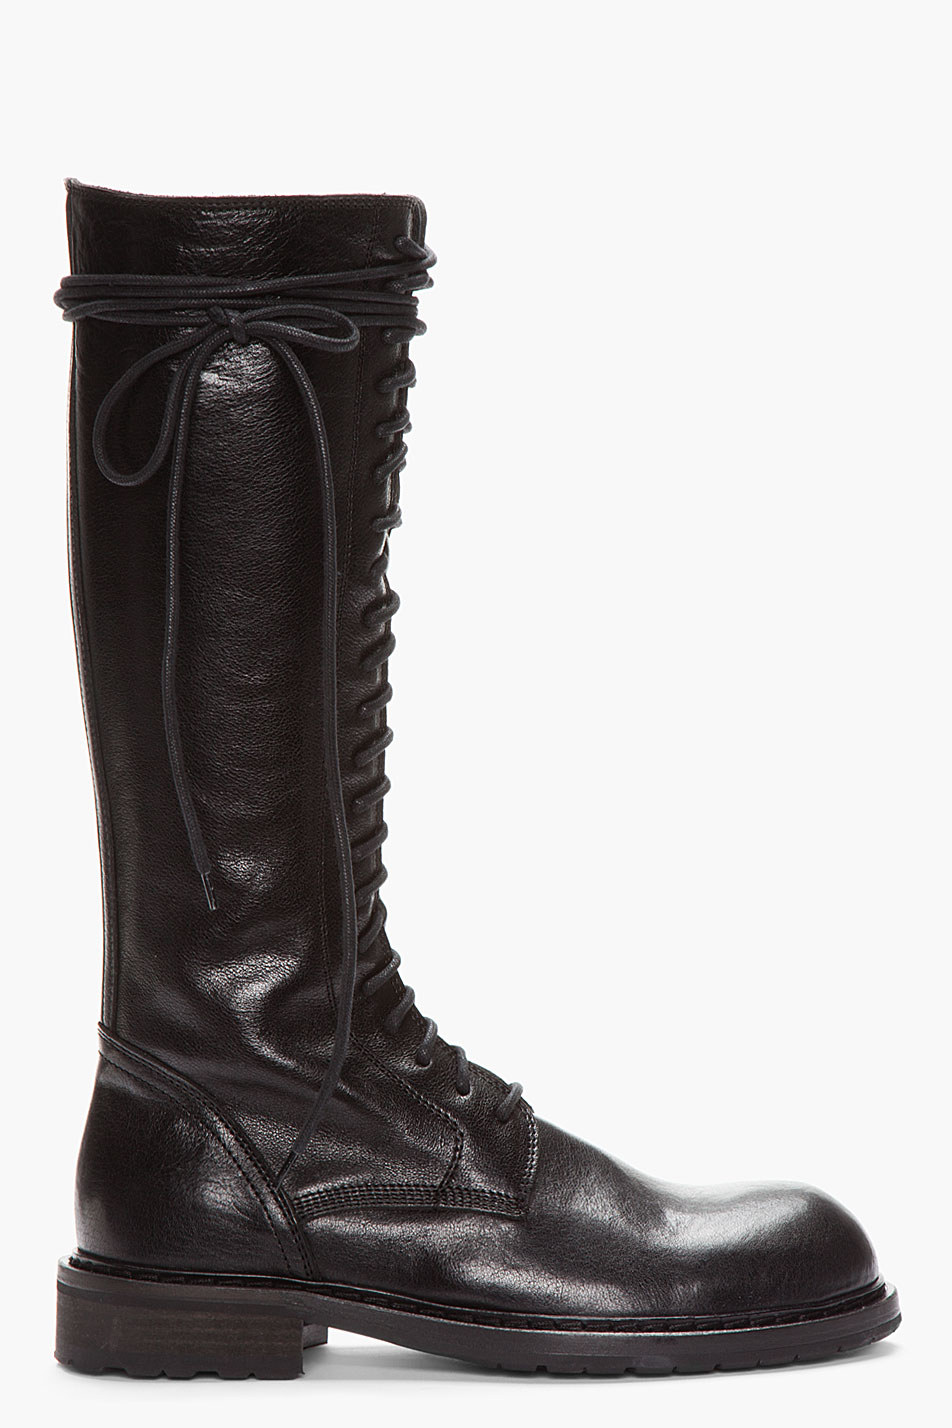 Lyst - Ann Demeulemeester Tall Black Leather Lace_up Boots ... Hugo Boss Green Shoes